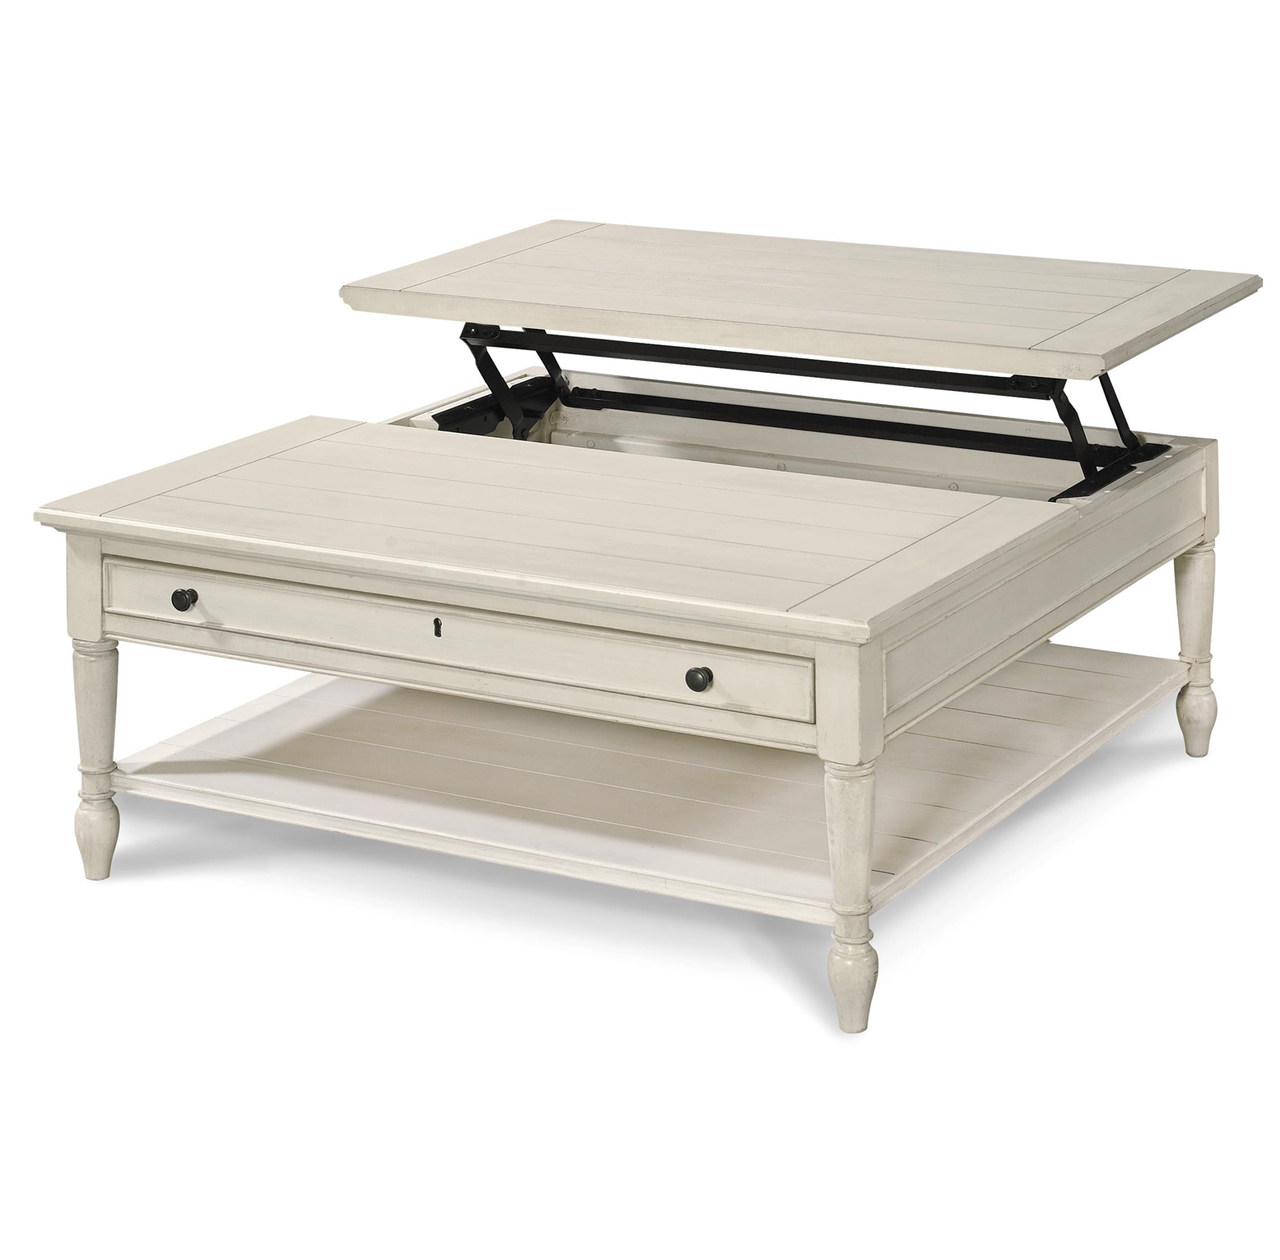 CountryChic White Wood Square Coffee Table with Lift Top